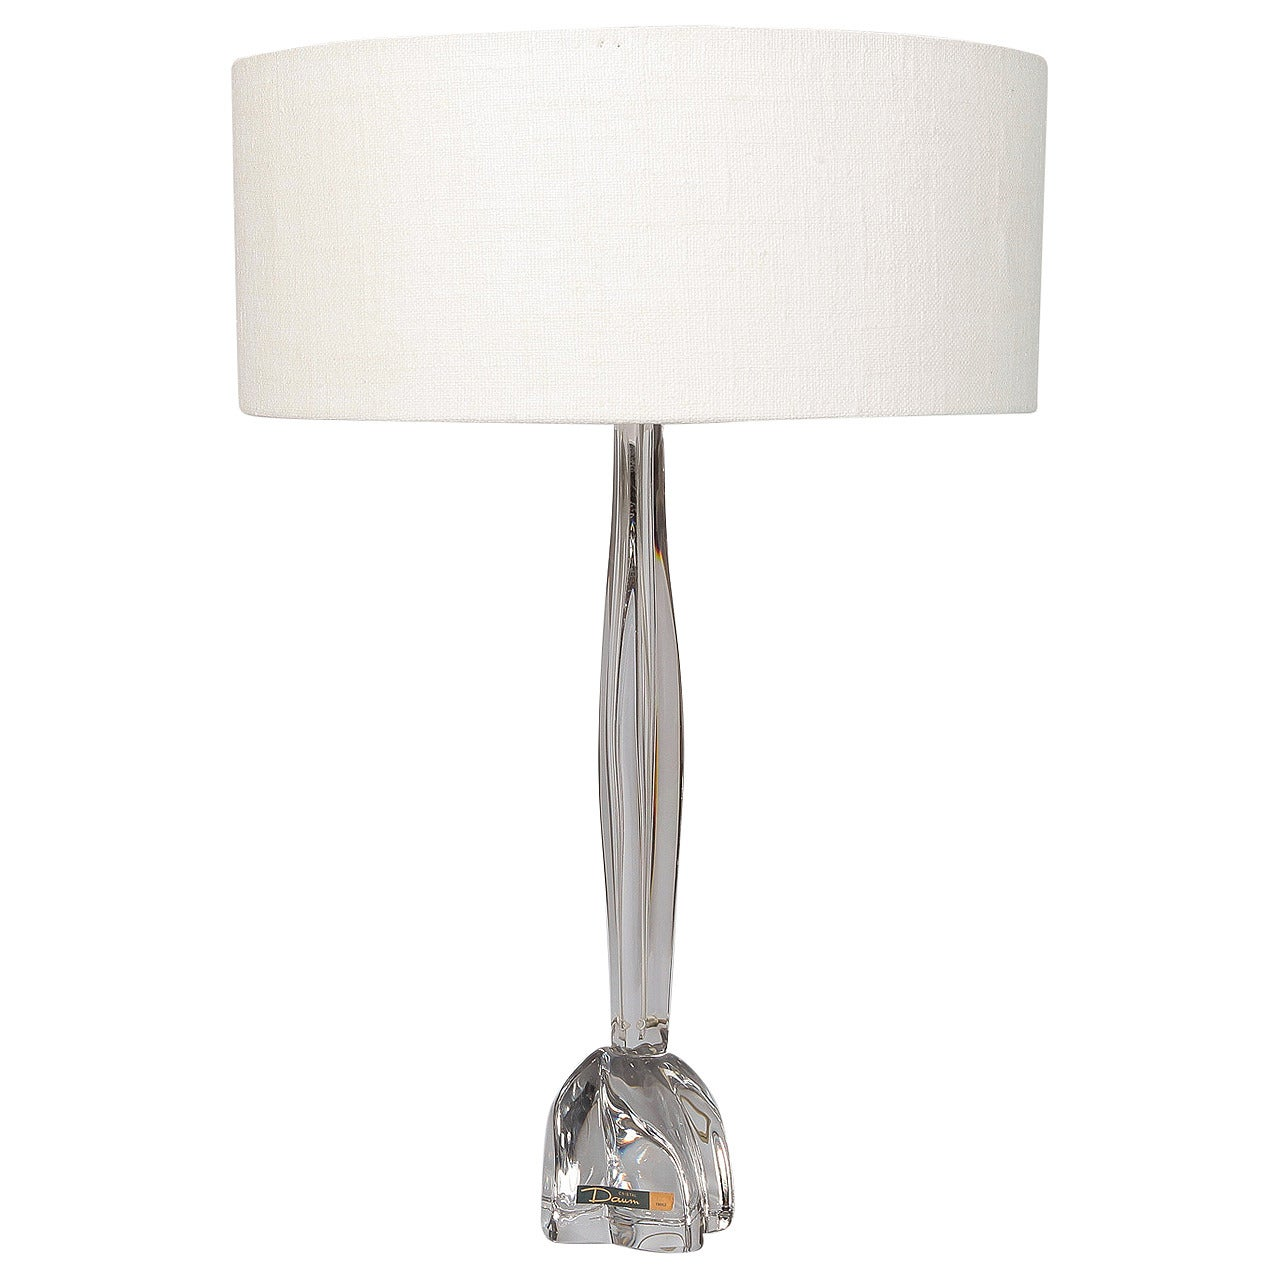 Tall Midcentury Daum Clear Glass Table Lamp With Shade At 1stdibs